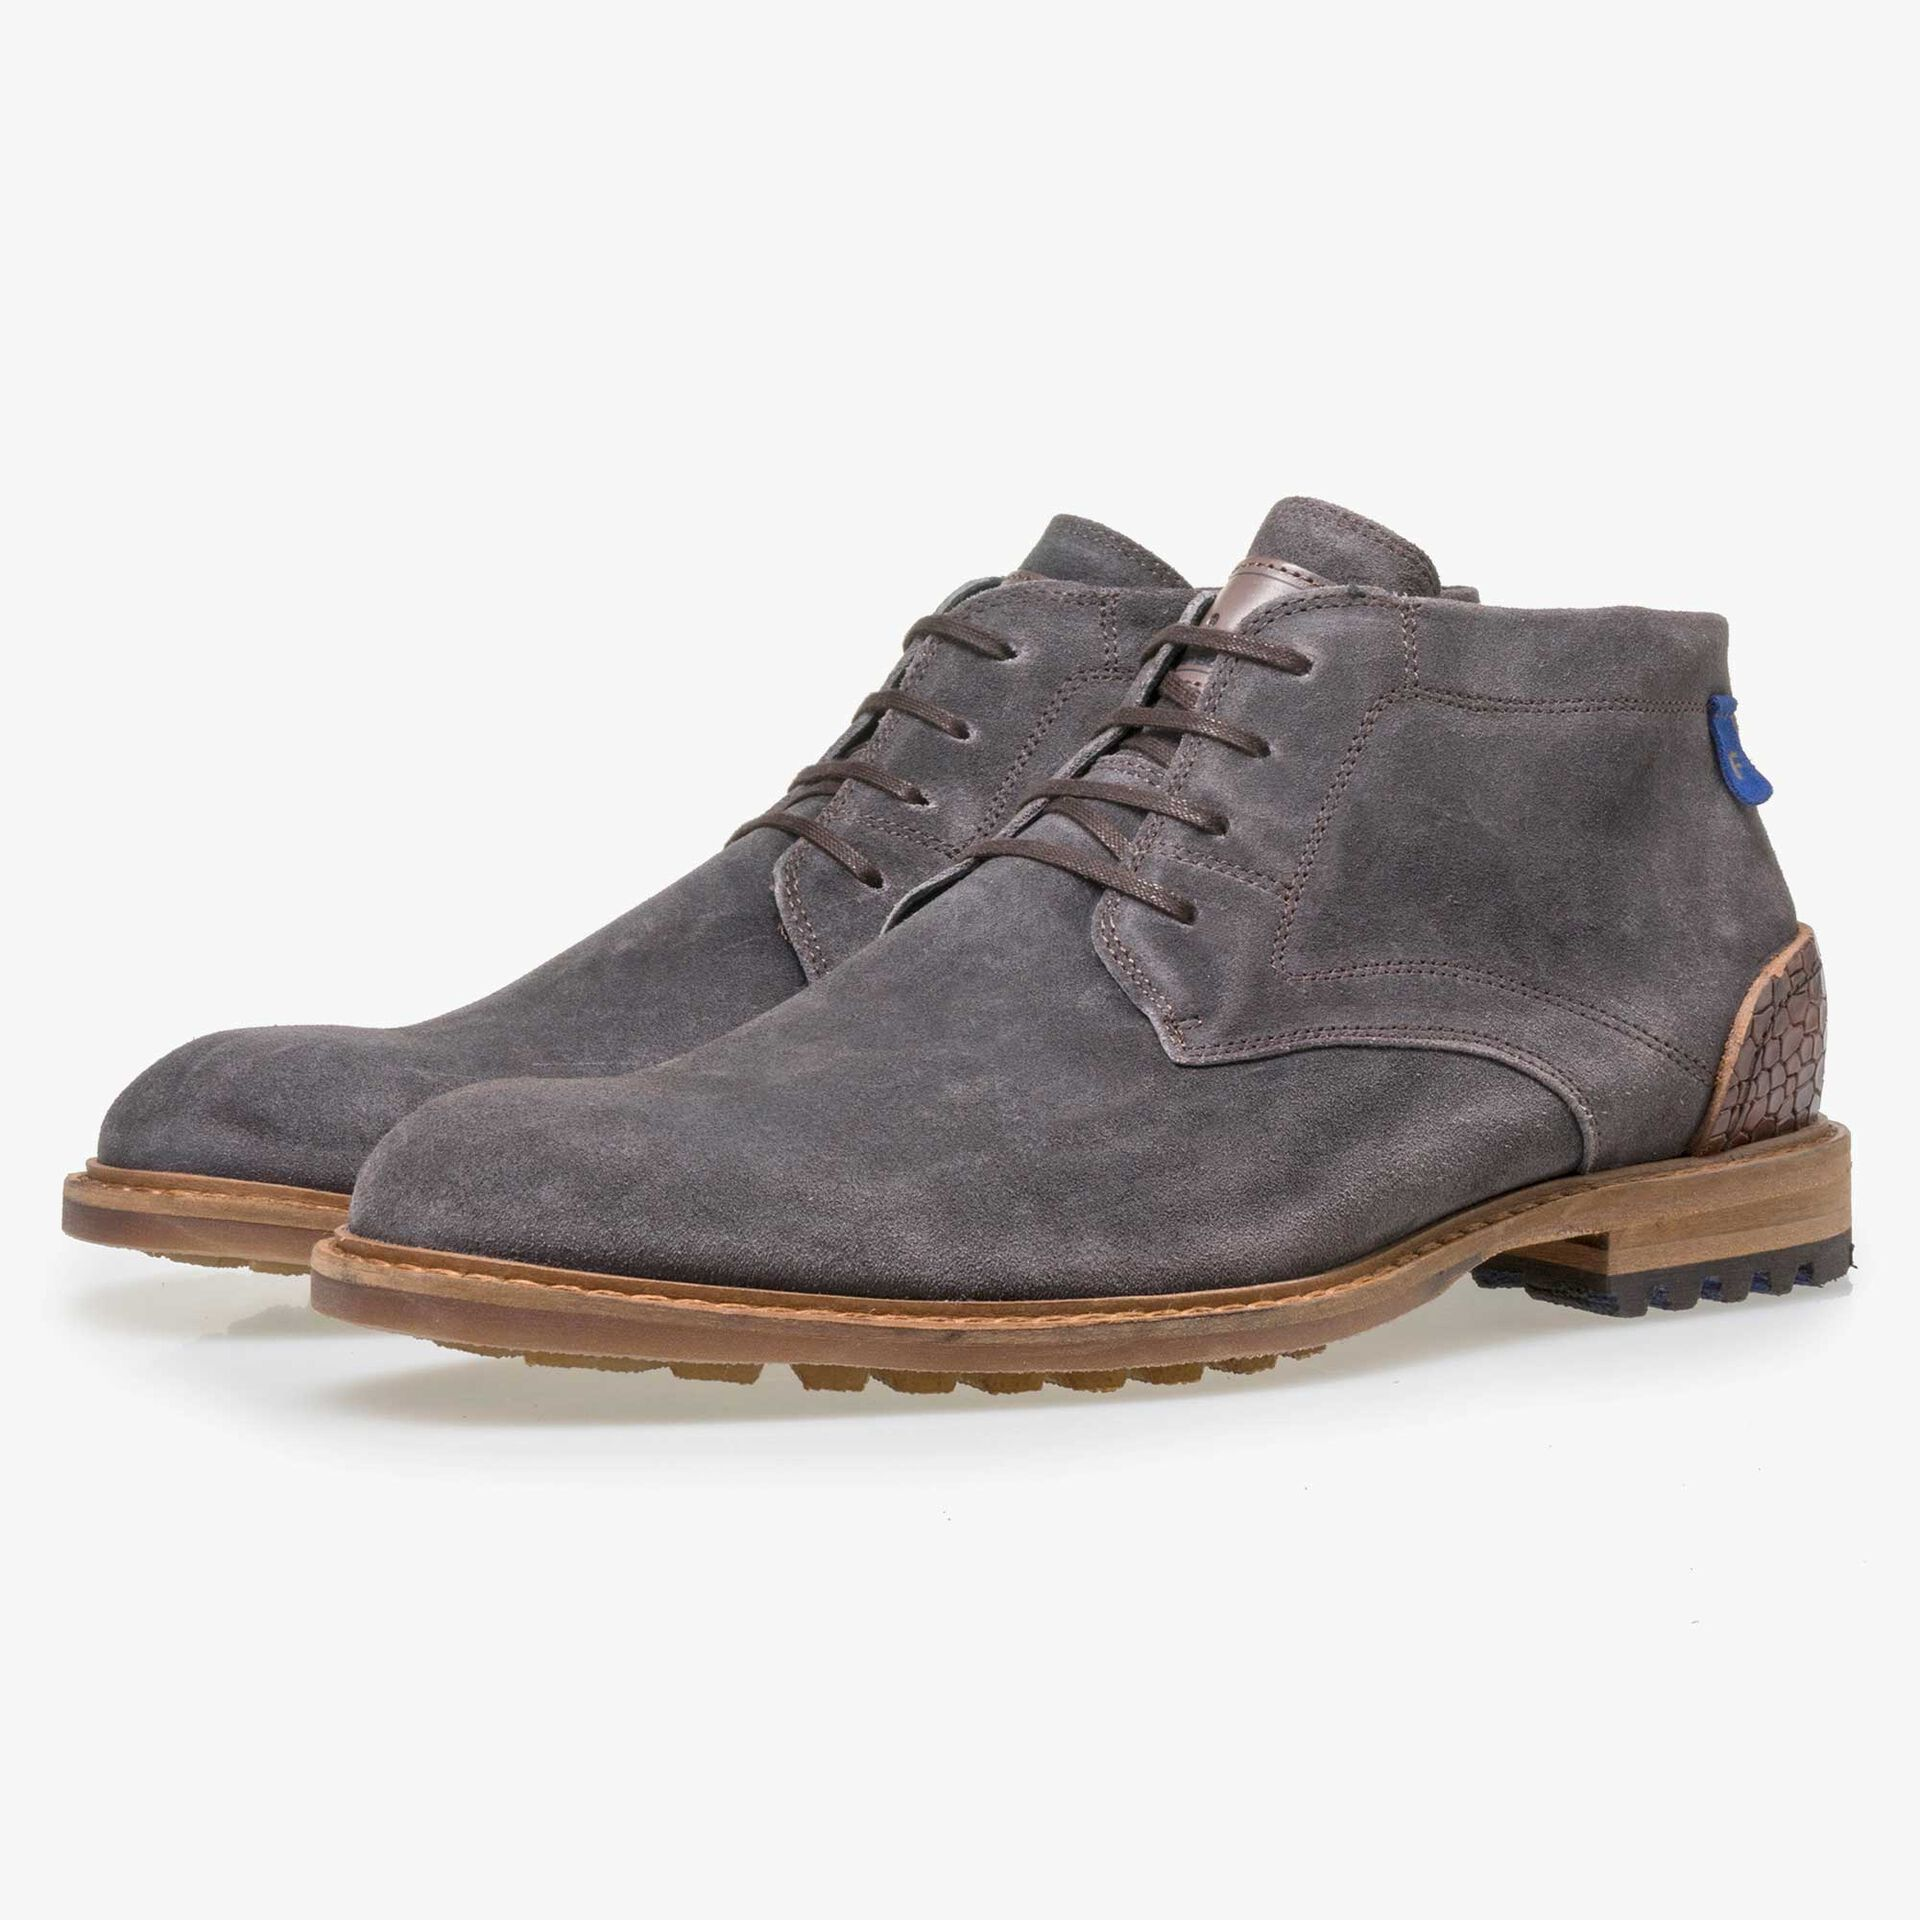 Floris van Bommel men's grey suede leather lace boot